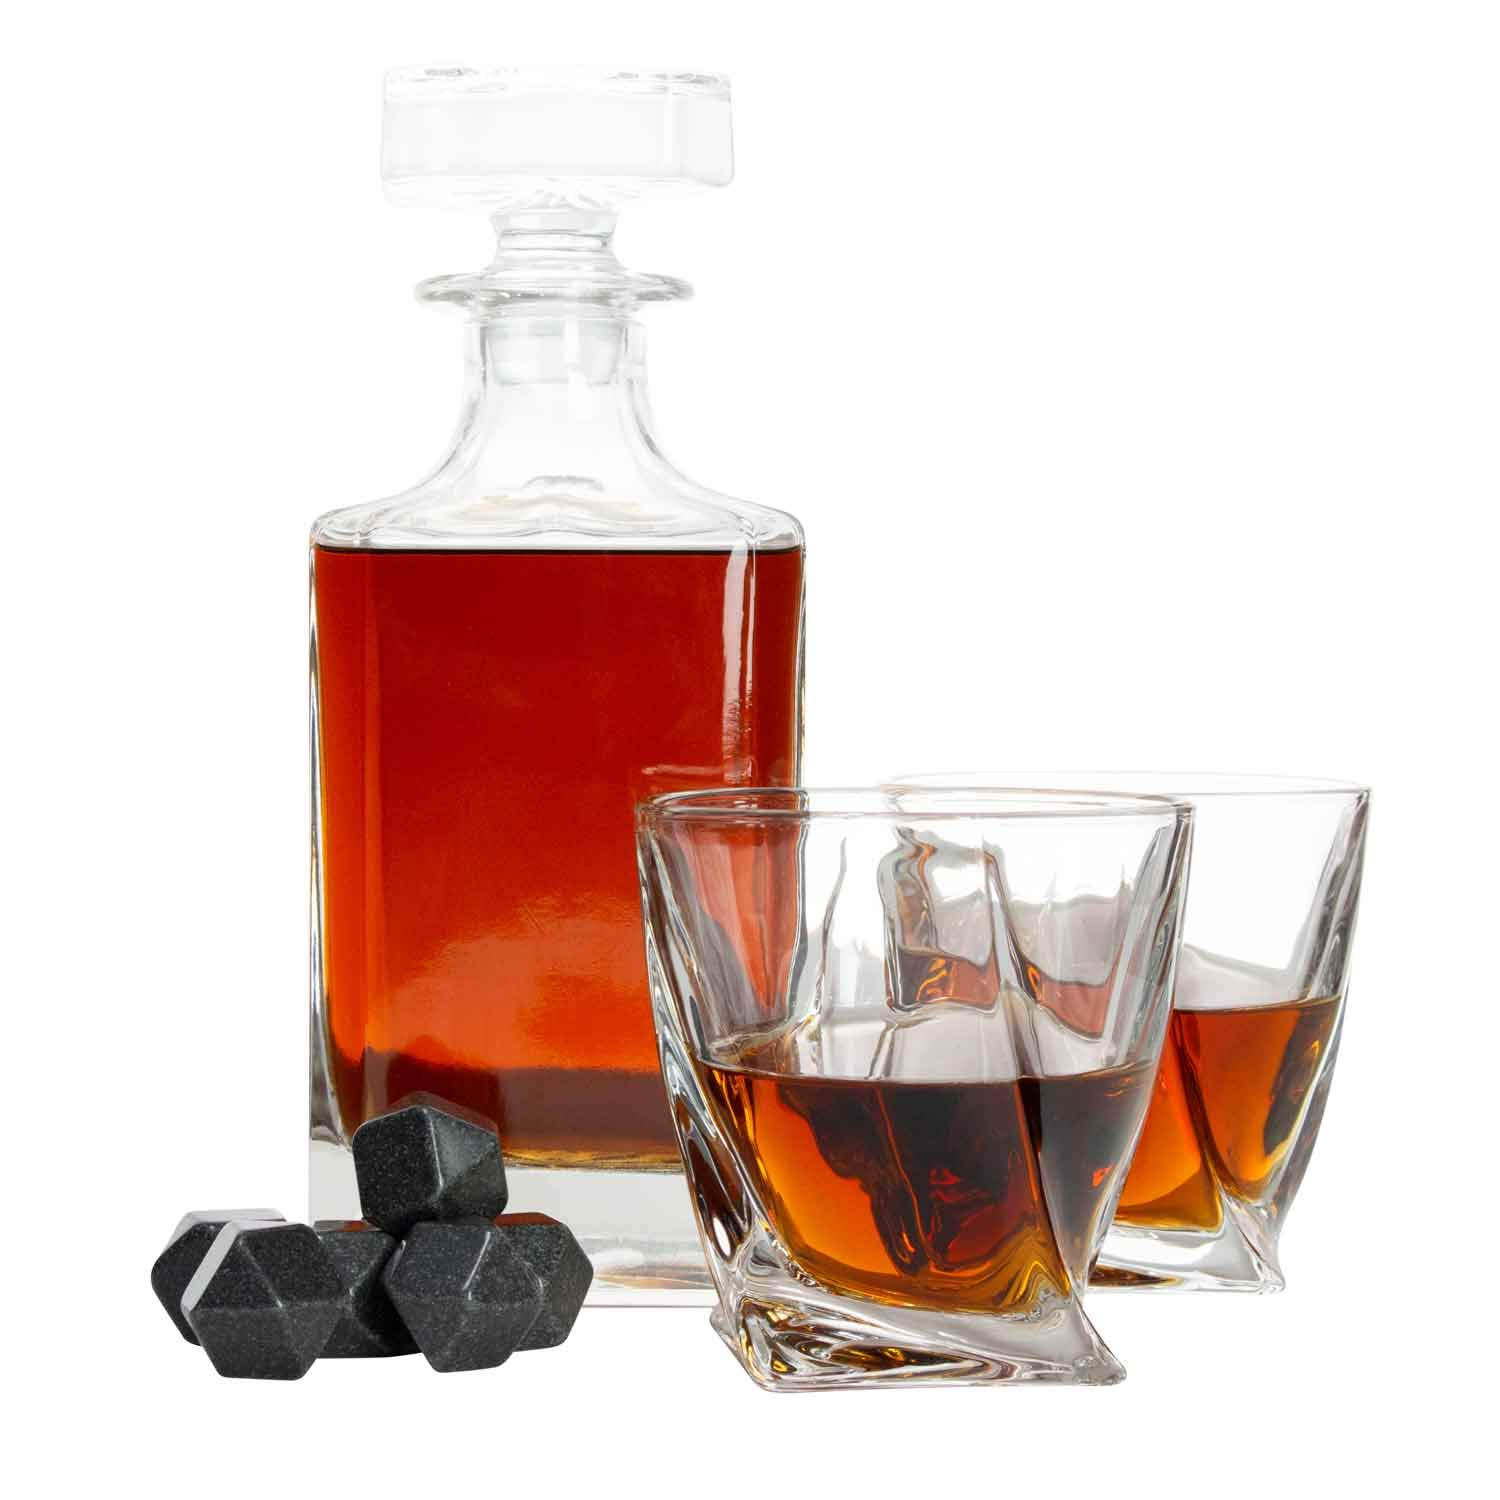 Atterstone Crate Whiskey Box Set with Premium Decanter and 2 Swirl Glasses, Includes 9 Chilling Stones and 2 Dark Stone Coasters, Encased in Polished Wood Box Great for Holiday and Wedding Gifts by Atterstone (Image #5)